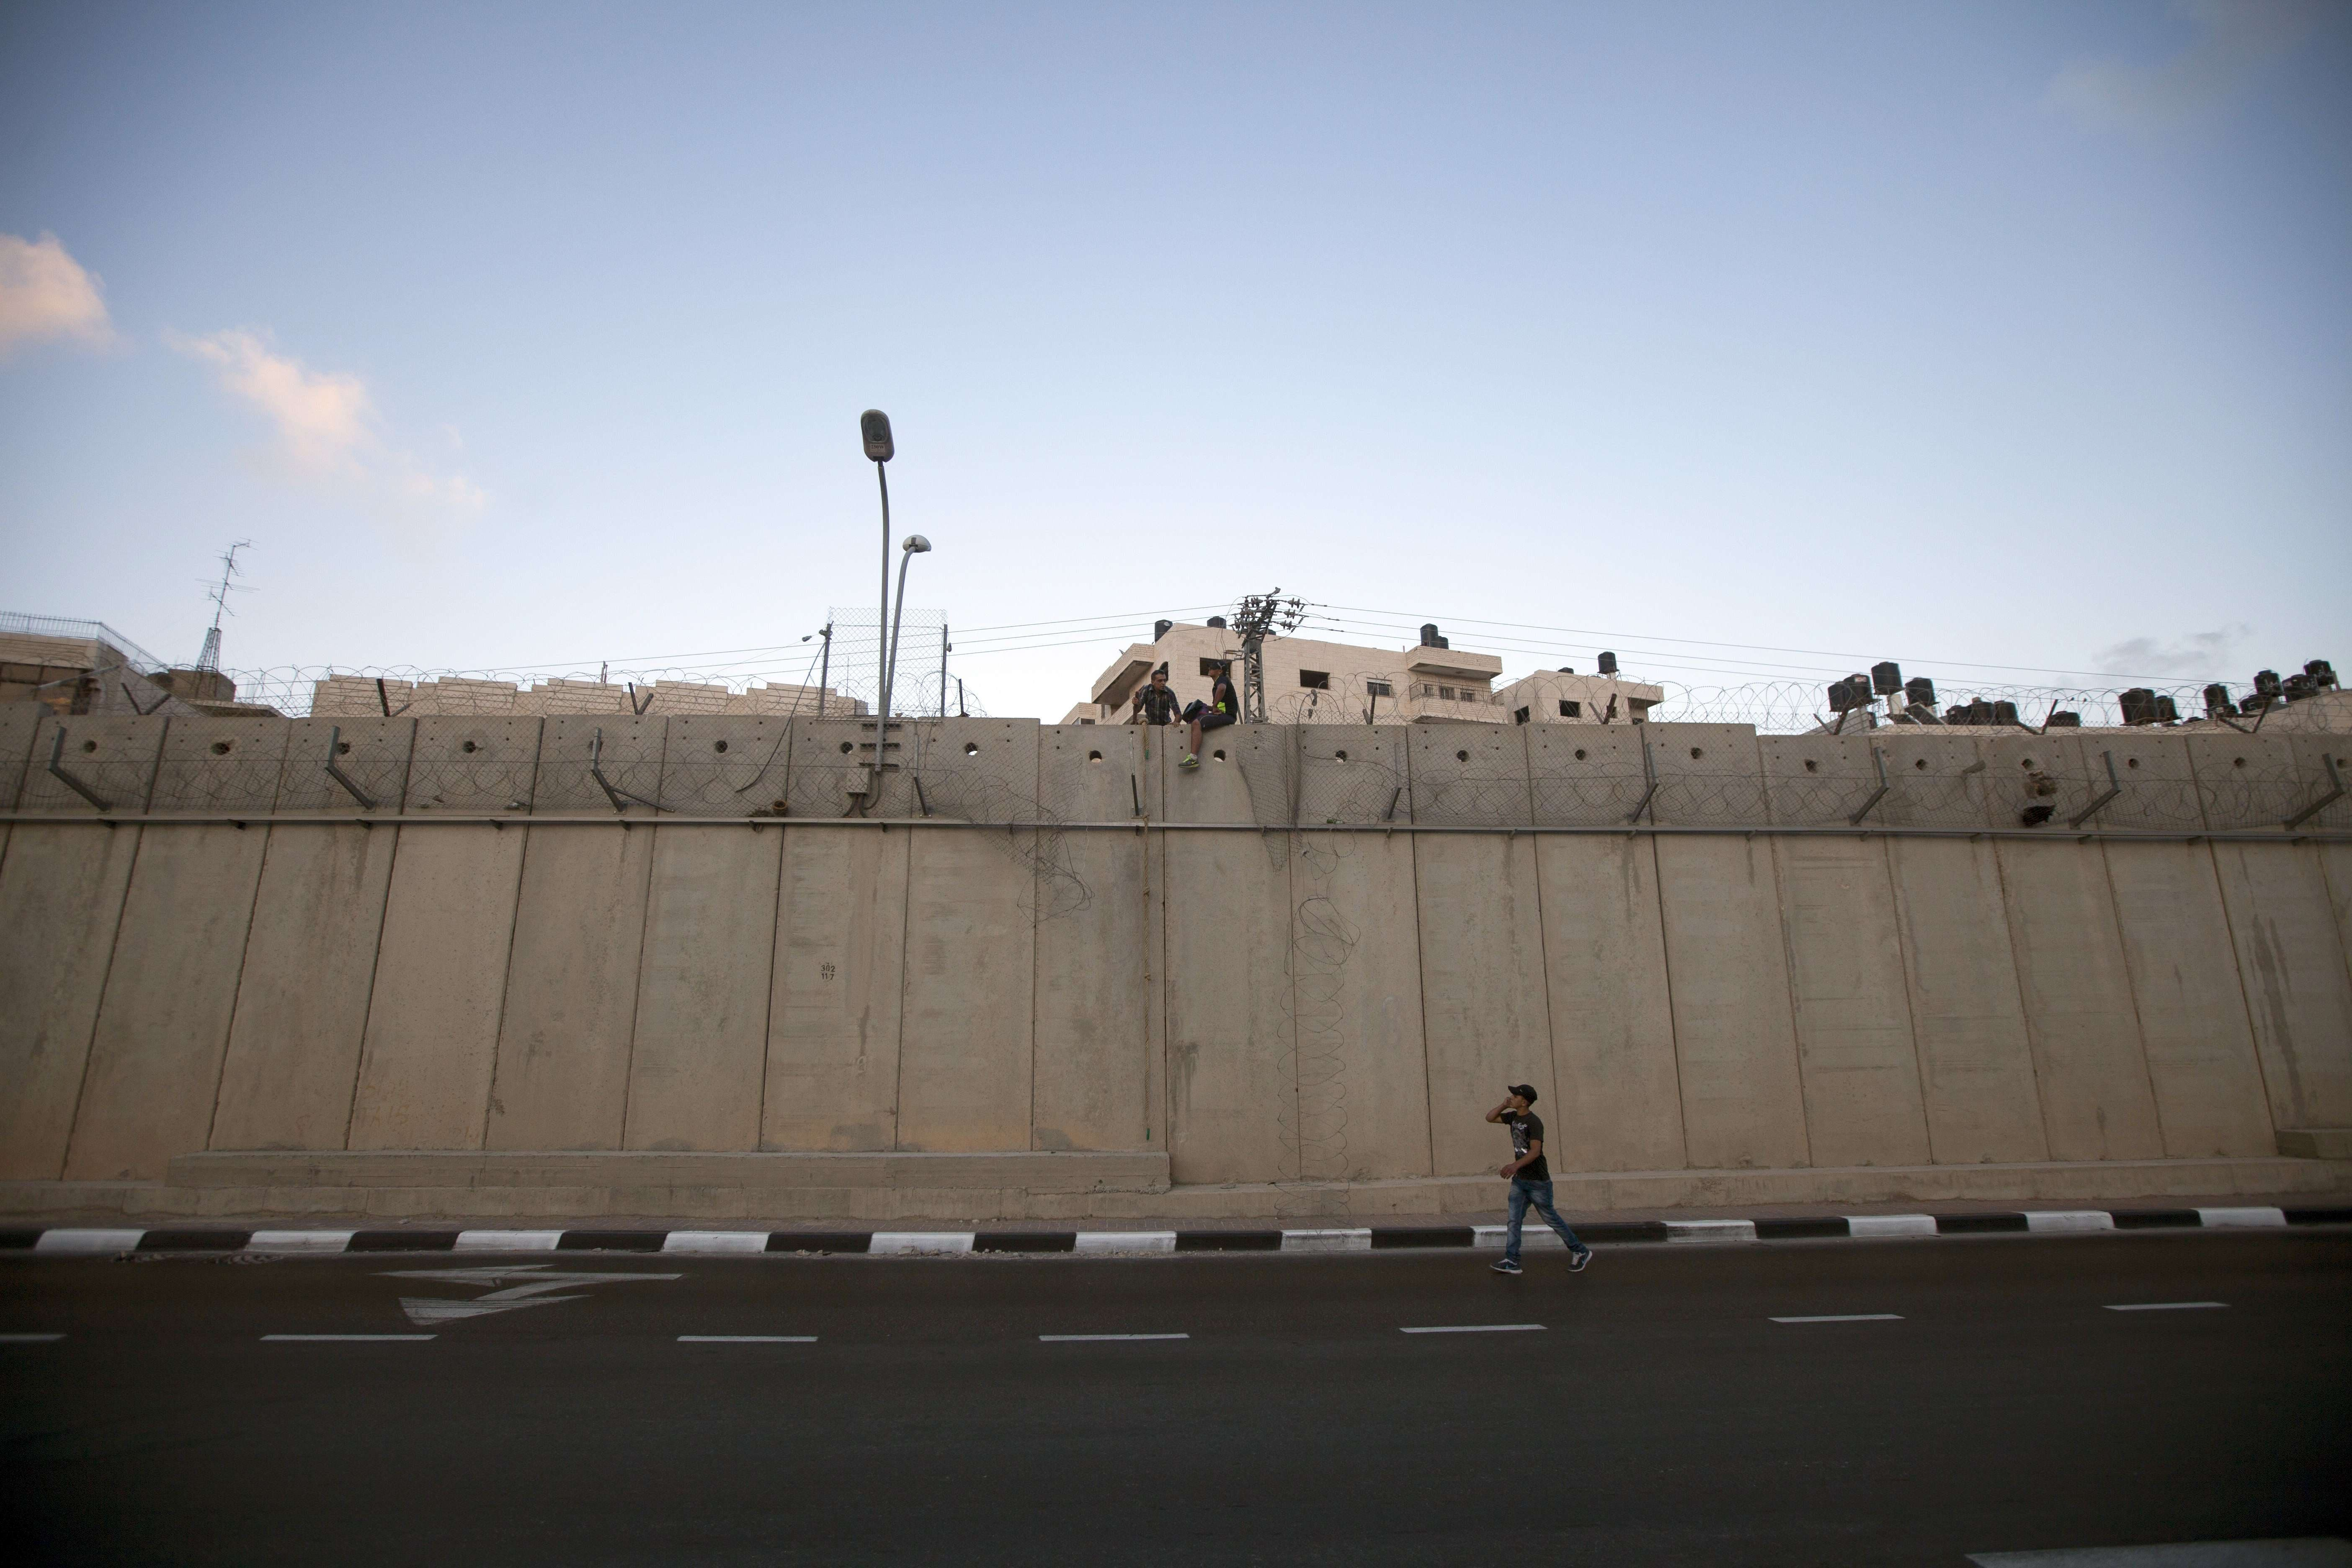 Palestinian men prepare to jump using a rope over a section of Israel's controversial concrete barrier that separates the West Bank from Jerusalem on August 12, 2013, in Beit Hanina, in Israeli annexed east Jerusalem. (AFP)